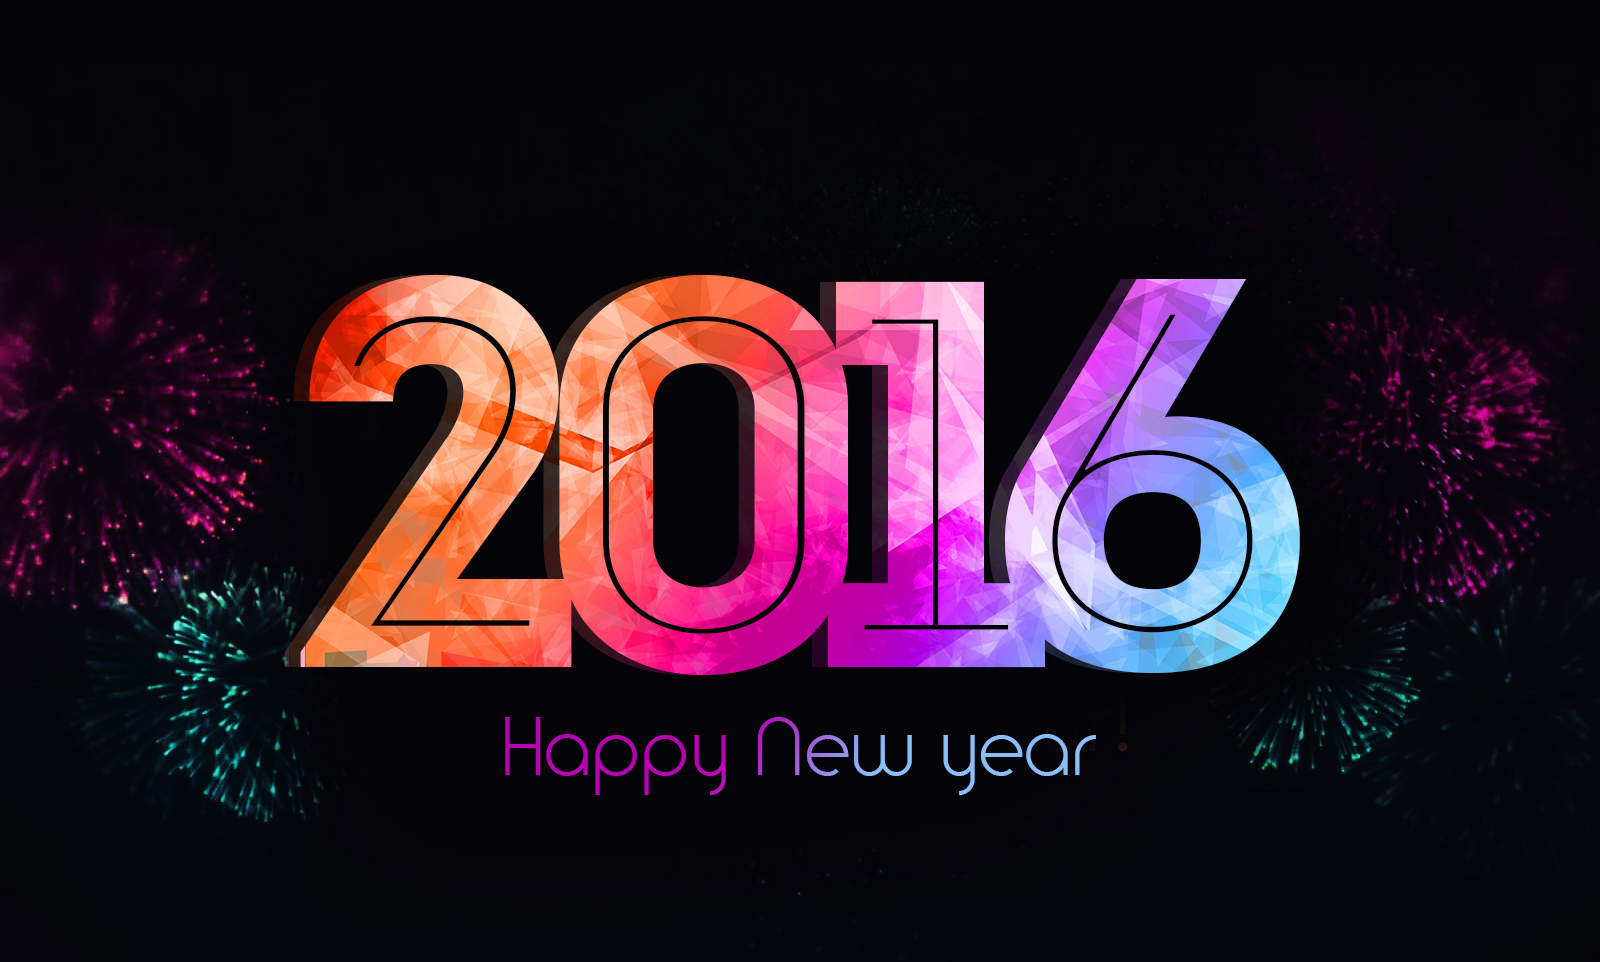 New Year 2016 HD Wallpapers for PC Desktops   Happy New Year 2016 1600x962